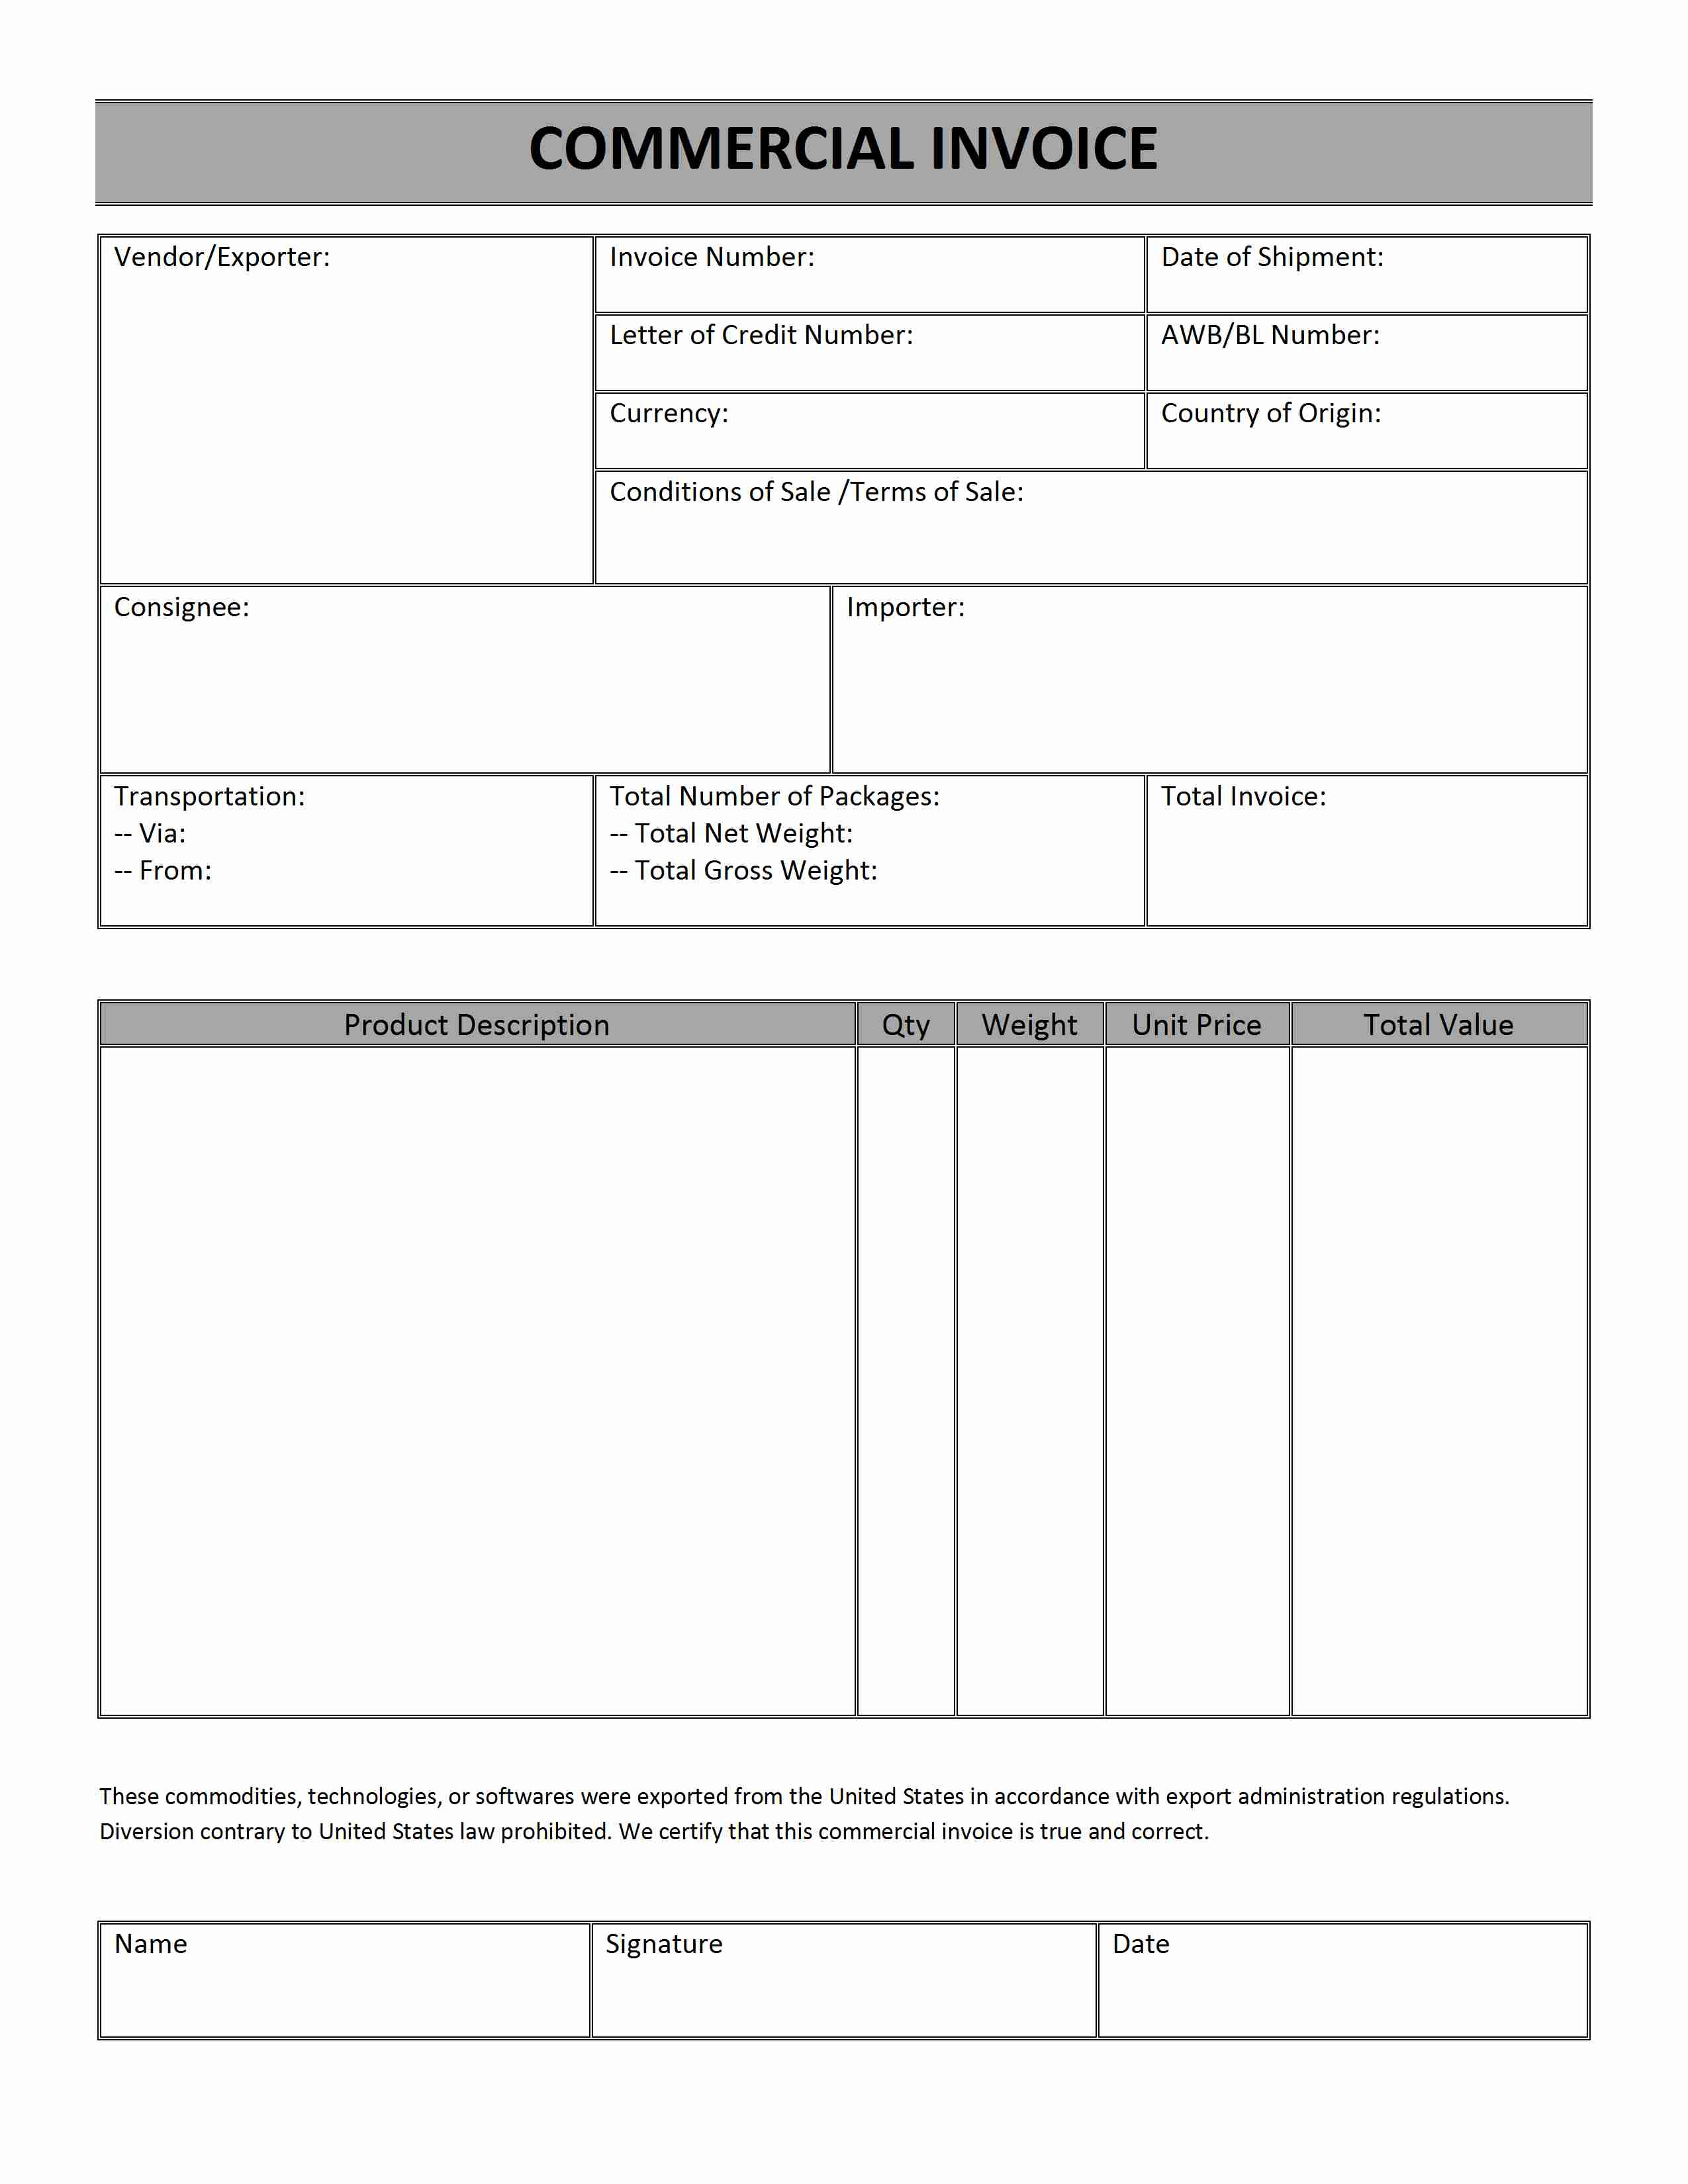 Opposenewapstandardsus  Marvellous Printable Sales Invoice Simple Invoice Form Free Invoice  With Interesting Printable Receipt Free  Free Printable Raffle Tickets  Receipt   Printable With Attractive Valid Tax Invoice Also Blank Invoice Template Uk In Addition Performa Invoice Sample And Hyundai Invoice Pricing As Well As Gst Tax Invoice Template Additionally Gnucash Invoice Template From Happytomco With Opposenewapstandardsus  Interesting Printable Sales Invoice Simple Invoice Form Free Invoice  With Attractive Printable Receipt Free  Free Printable Raffle Tickets  Receipt   Printable And Marvellous Valid Tax Invoice Also Blank Invoice Template Uk In Addition Performa Invoice Sample From Happytomco